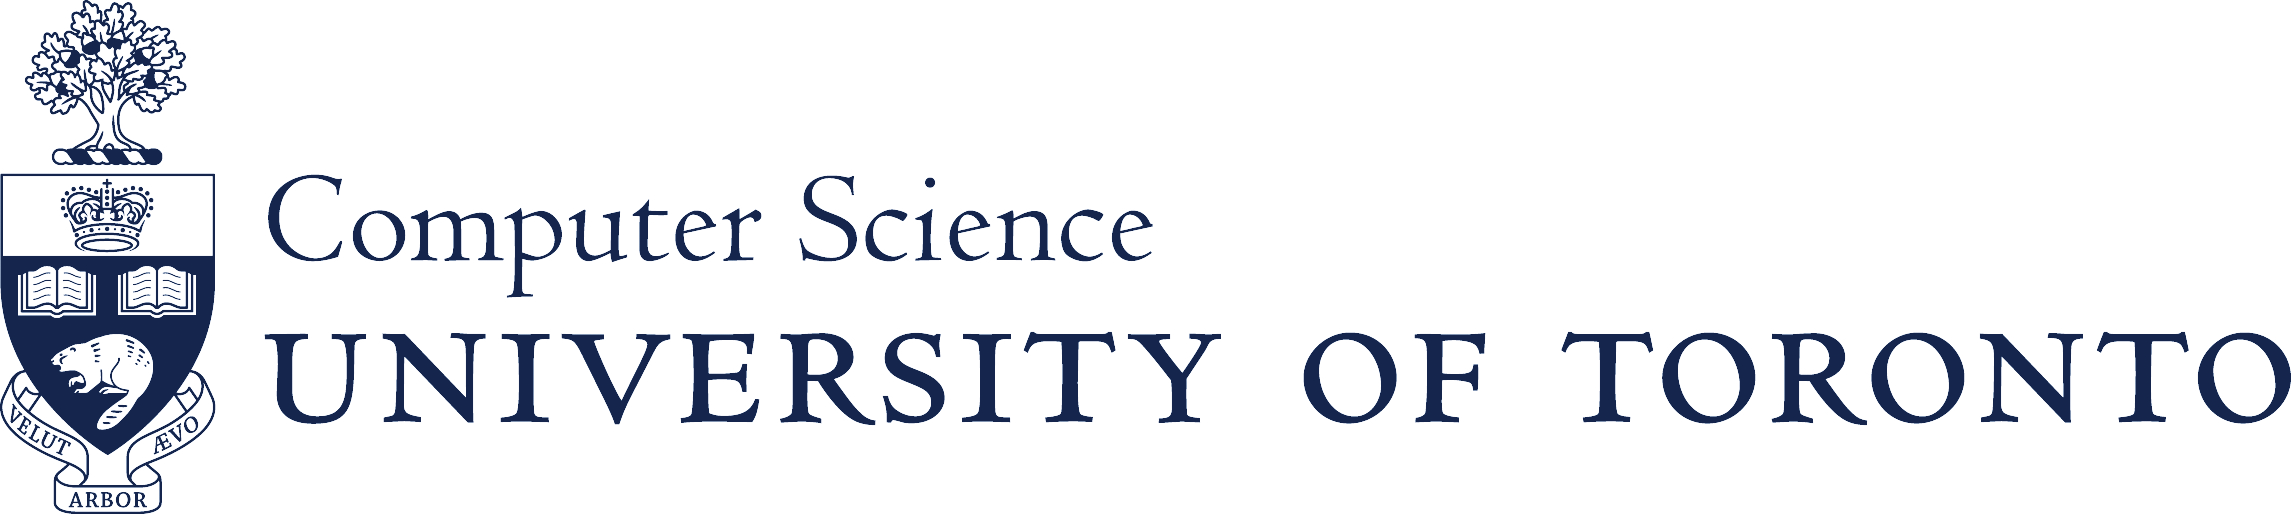 University of Toronto – Department of Computer Science